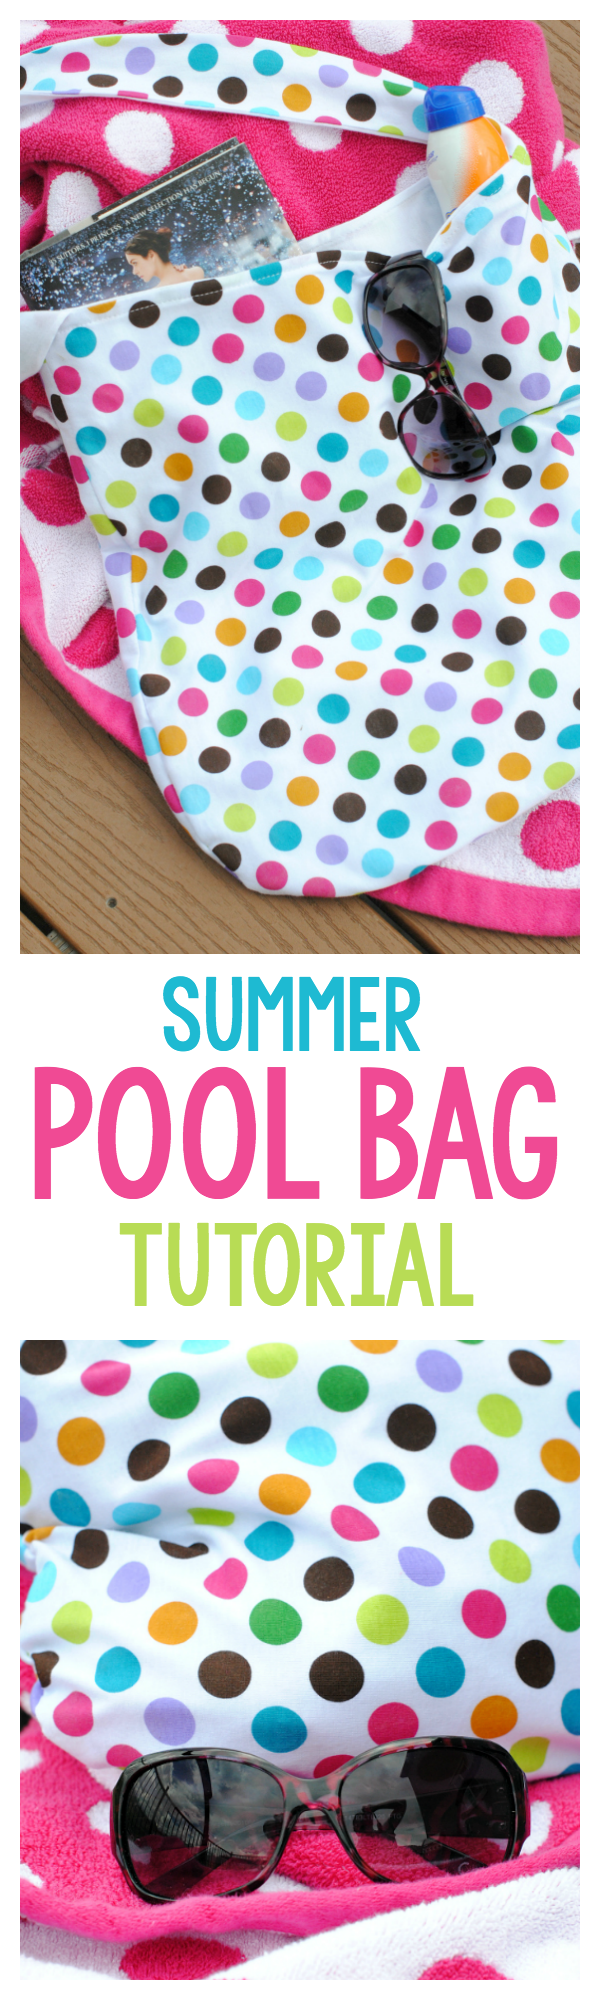 Summer Tote Bag Sewing Pattern-A great bag to take to the pool or to the beach this summer. Easy to sew and follow this tutorial. #sewing #sew #sewingpatterns #summer